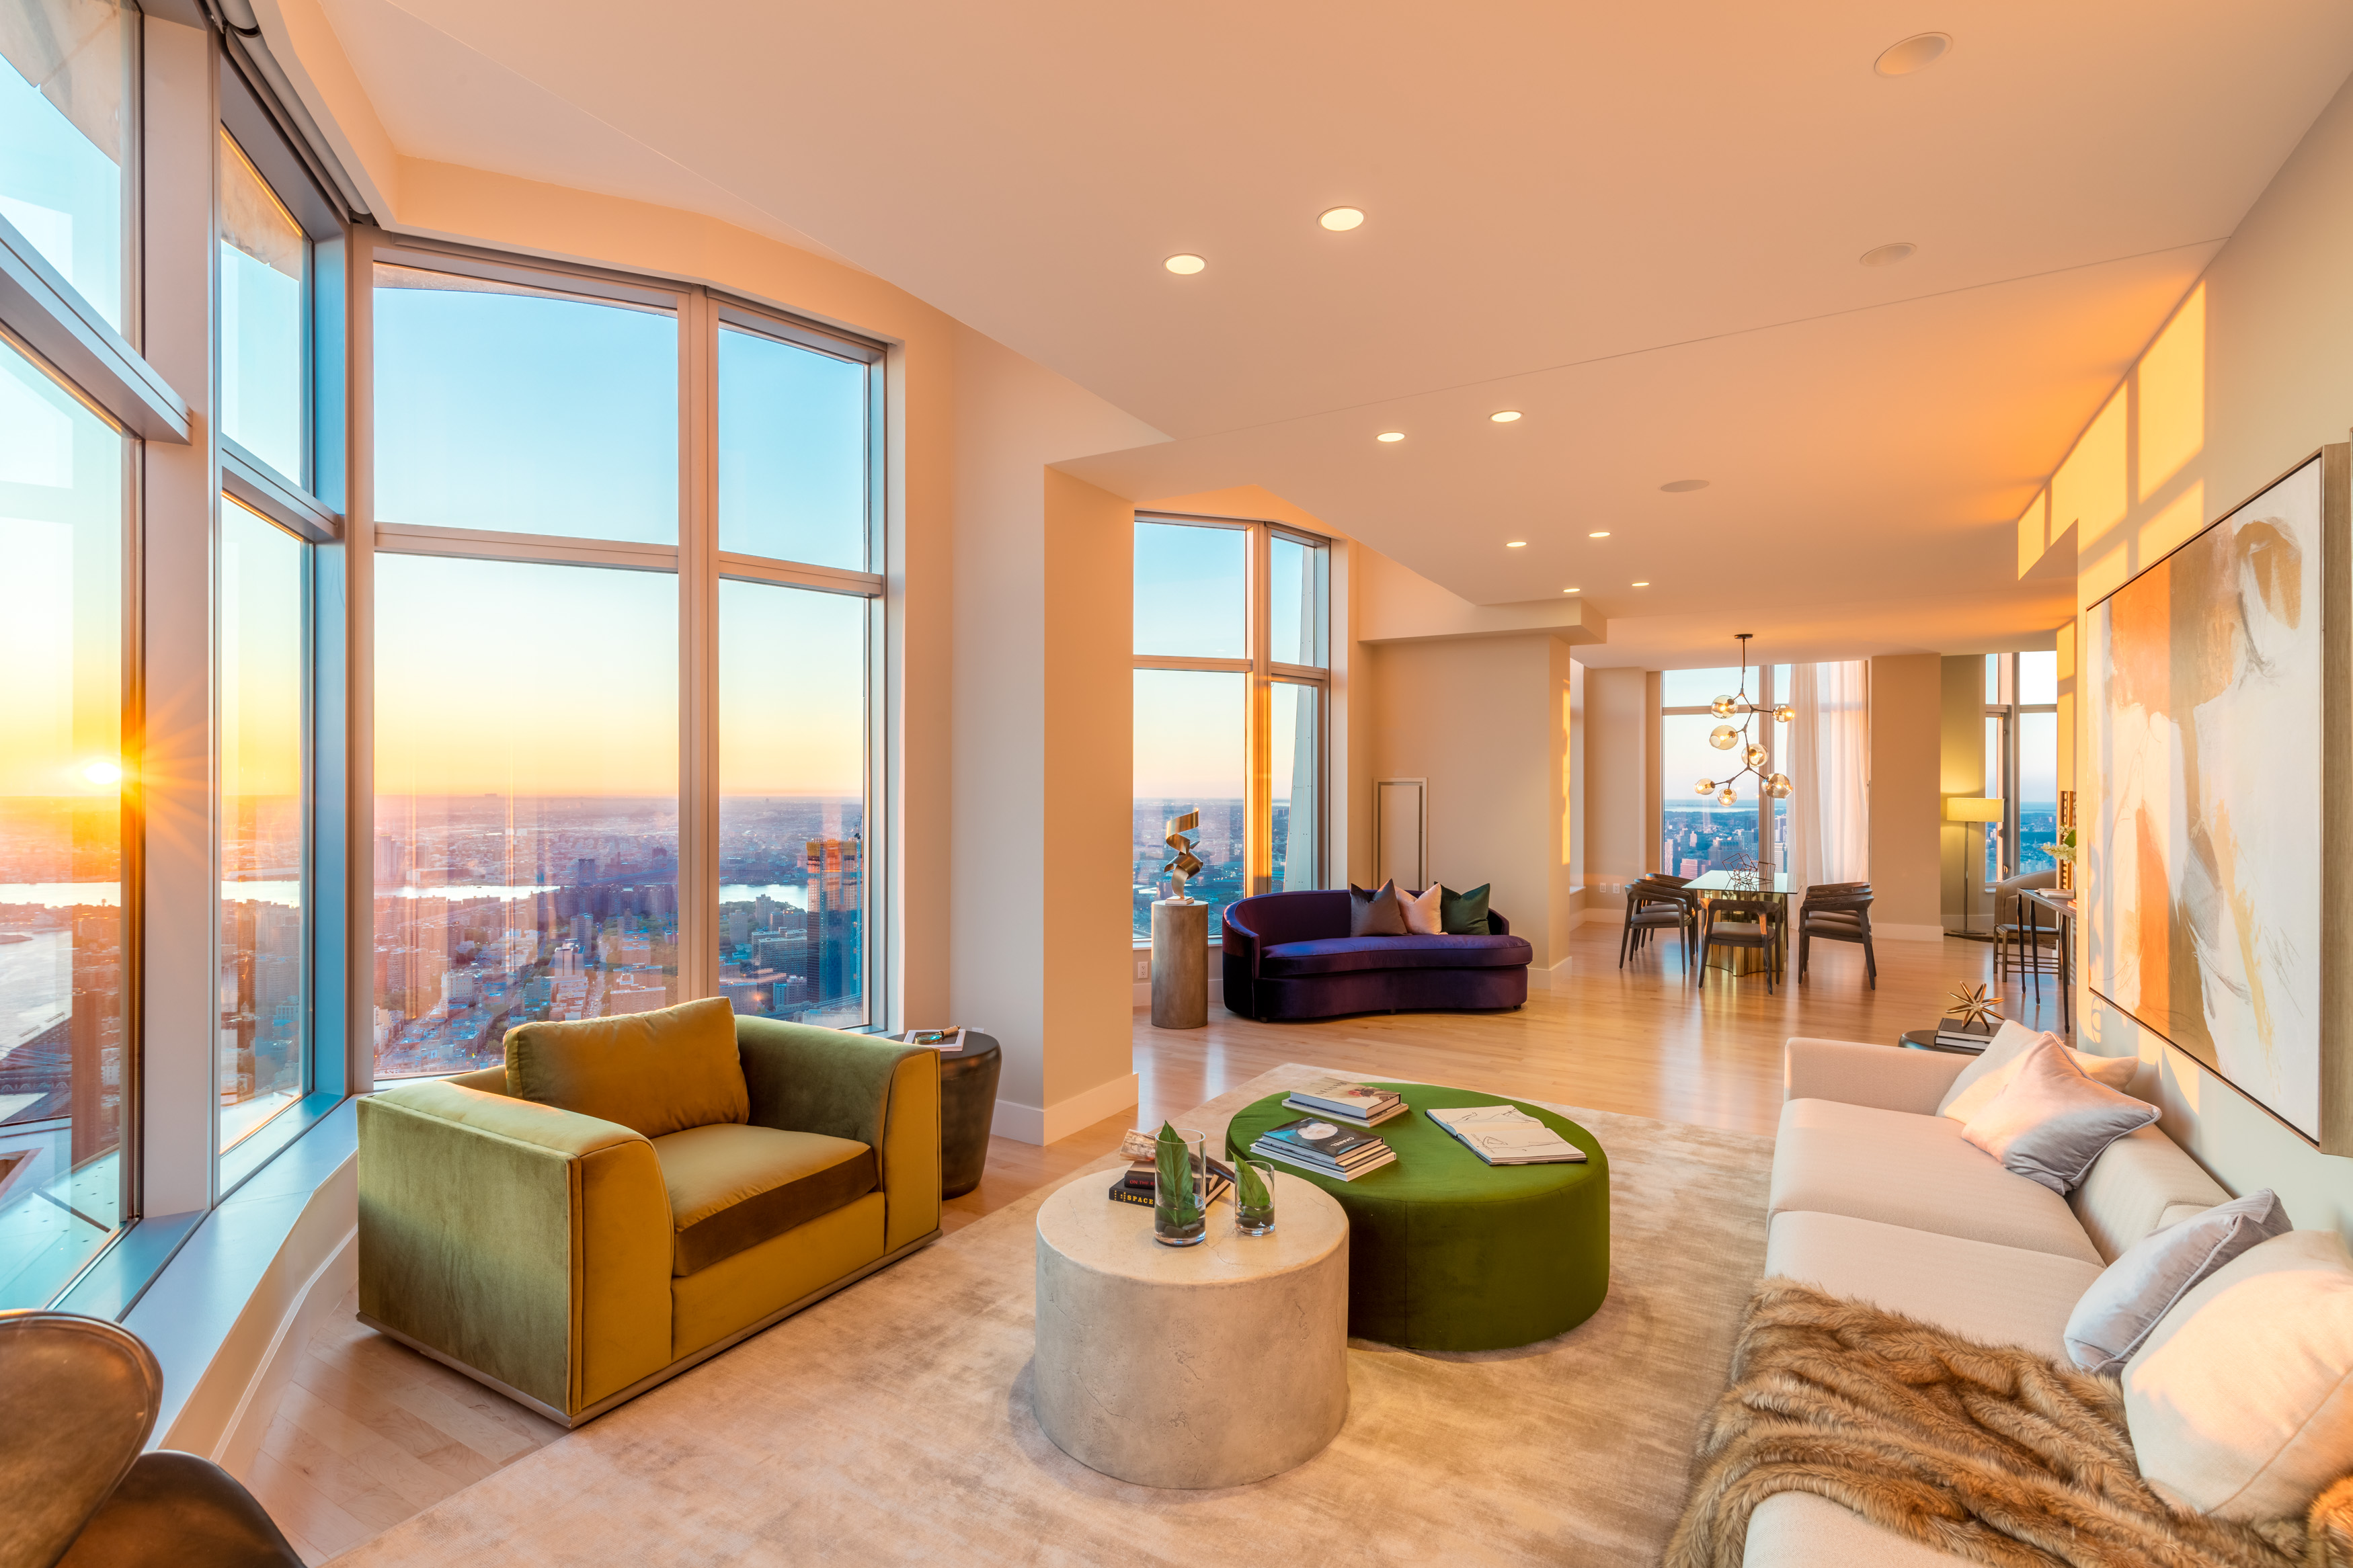 New york by gehry penthouse up for grabs as 45k month for New york penthouse rent